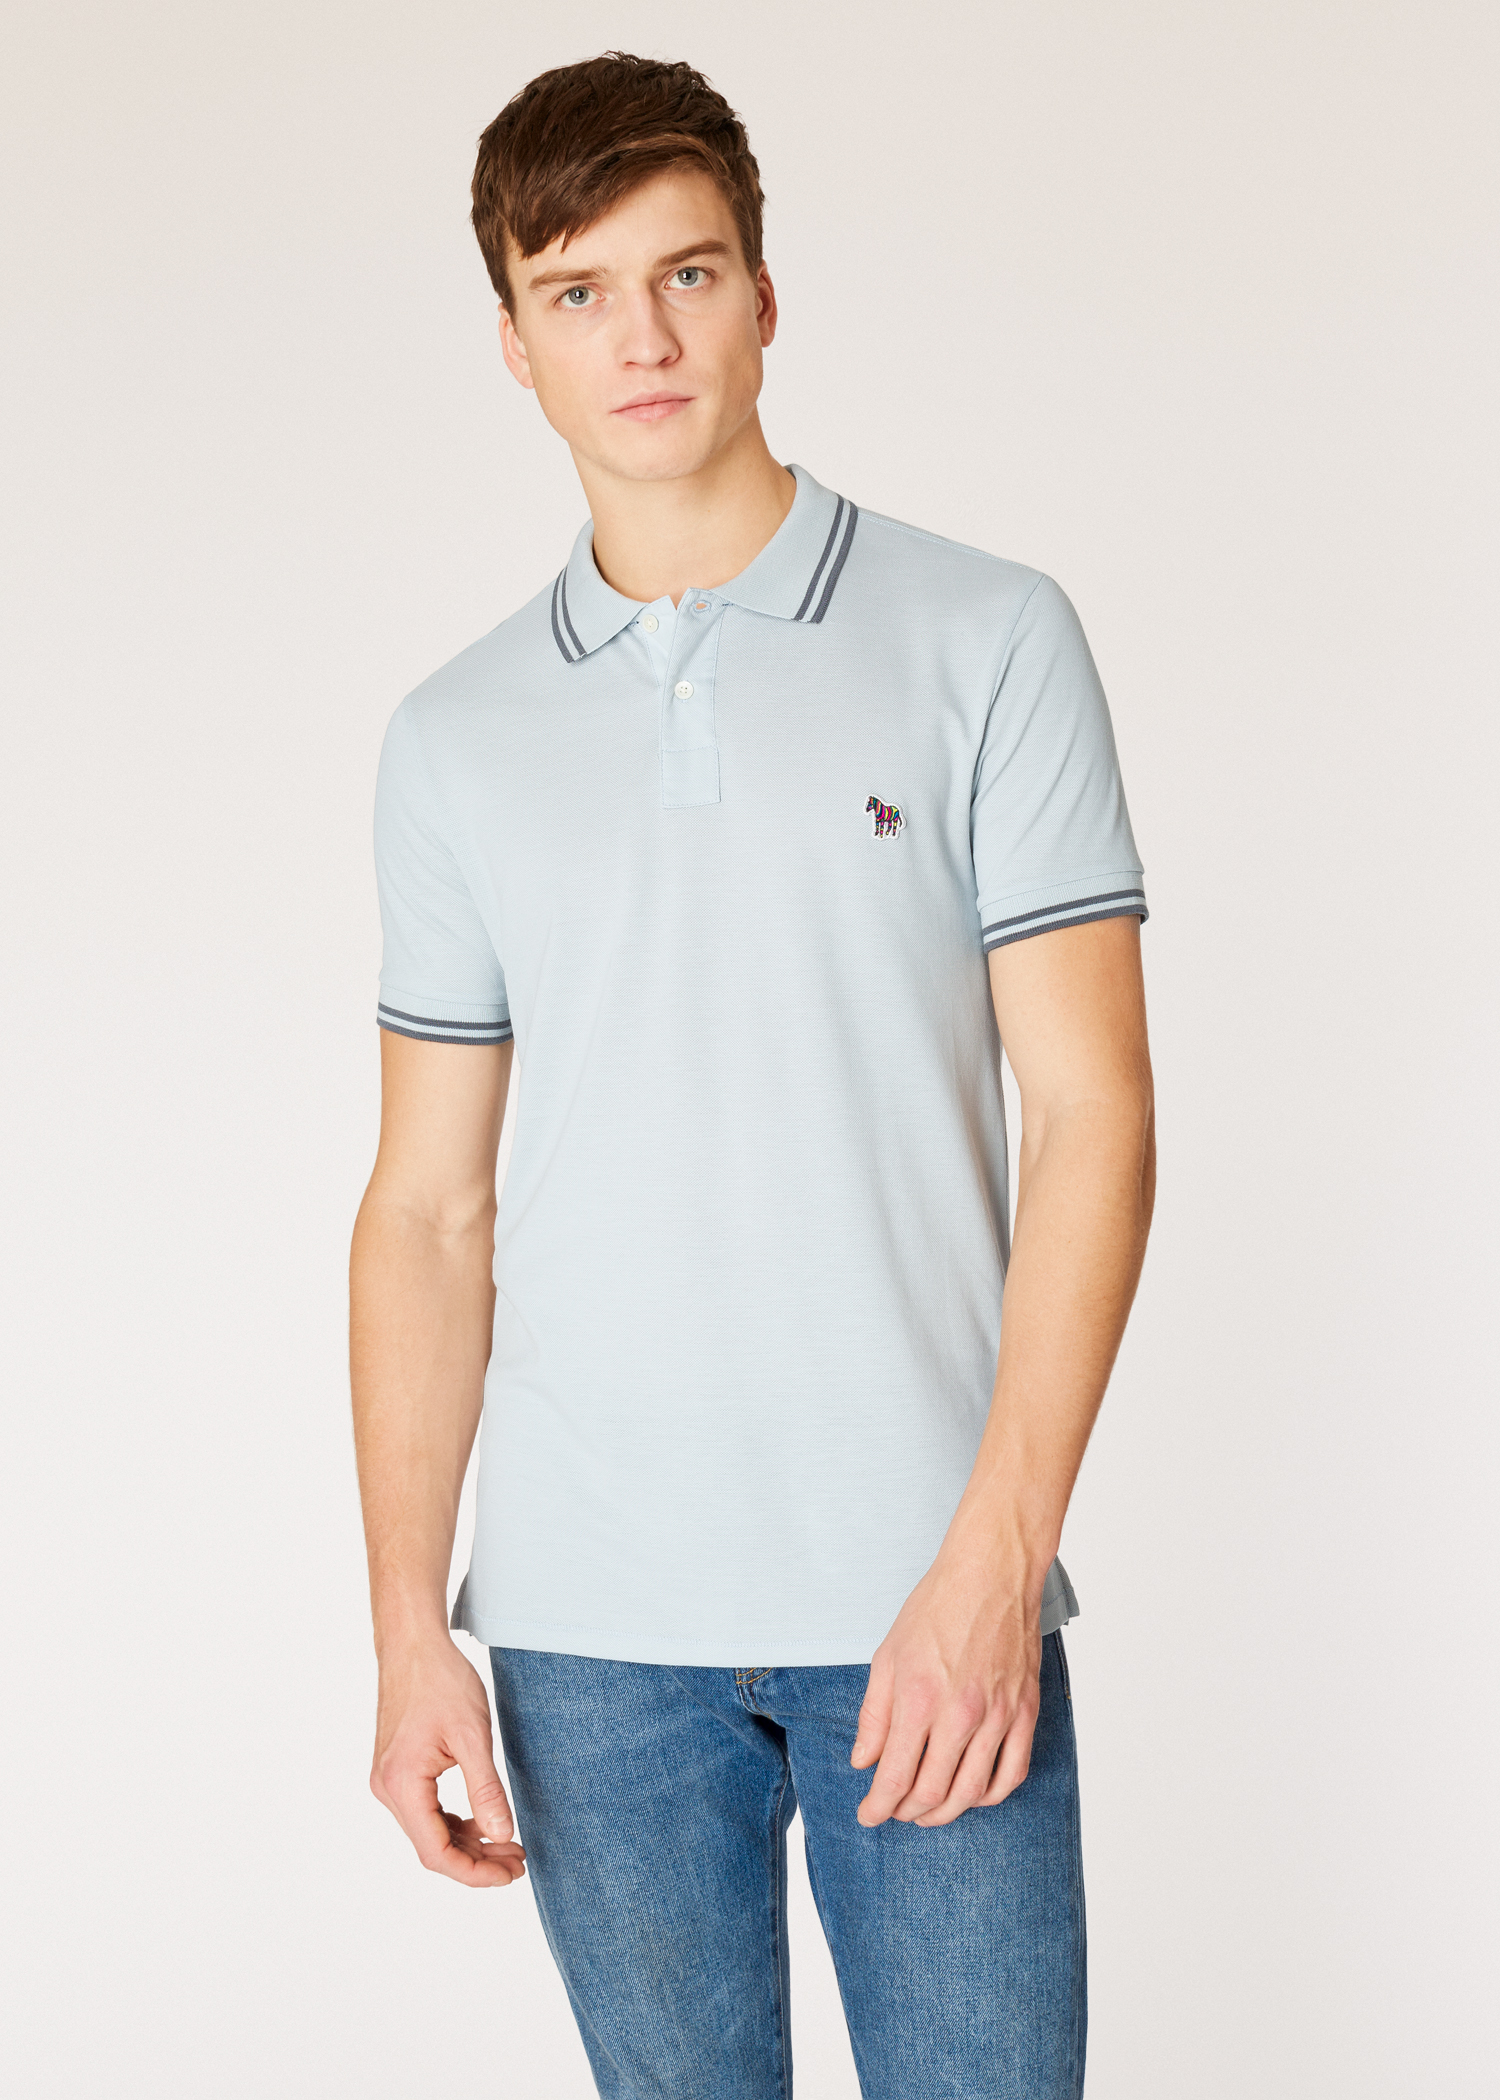 b4f7f8028 Model front view - Men's Slim-Fit Light Blue Zebra Polo Shirt With Grey  Tipping